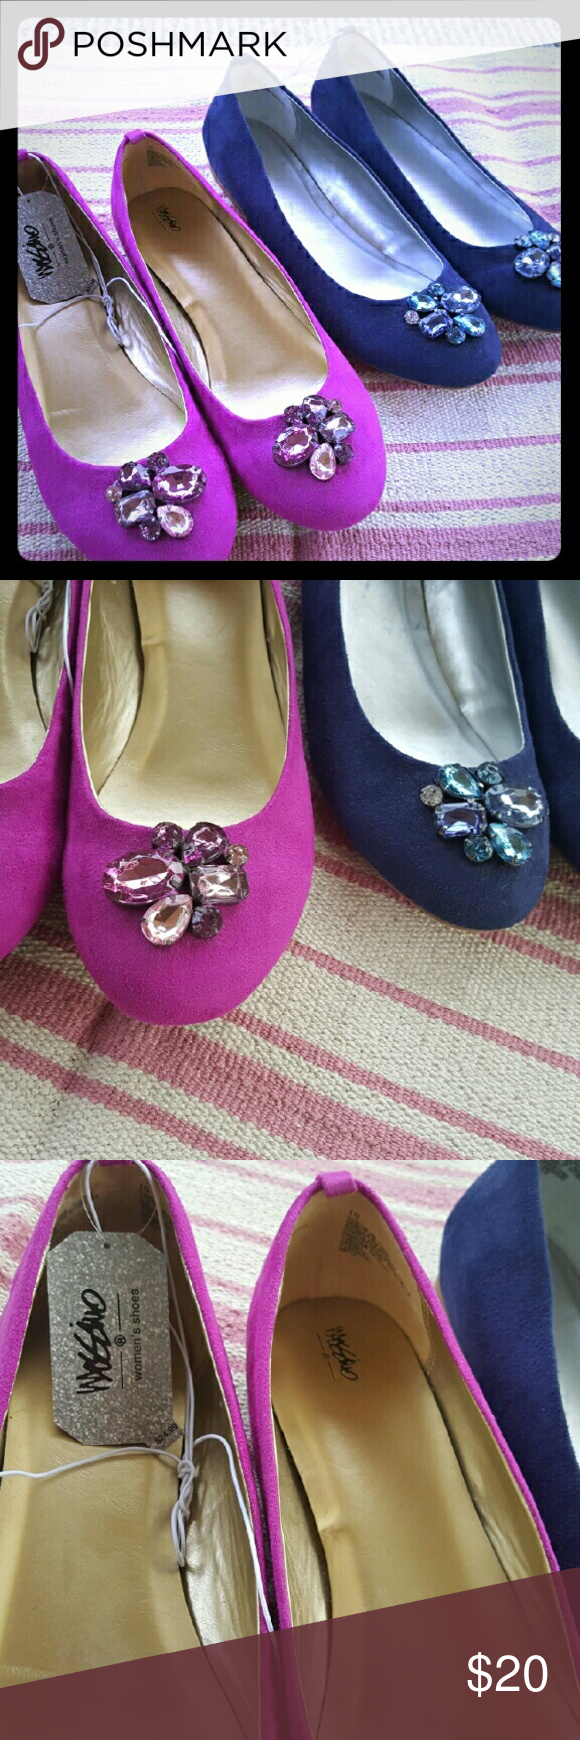 Mossimo jeweled ballet flats. Size 10. NWT. Lot of two pairs of jeweled ballet flats from Mossimo. Both pairs are size 10. One is fuchsia and one is navy blue. They are a faux suede. Both pairs are brand new (pink pair still has tags). I can't wear these due to an injury. It's too bad because they are beautiful! Comes from a pet and smoke free home. Mossimo Supply Co Shoes Flats & Loafers